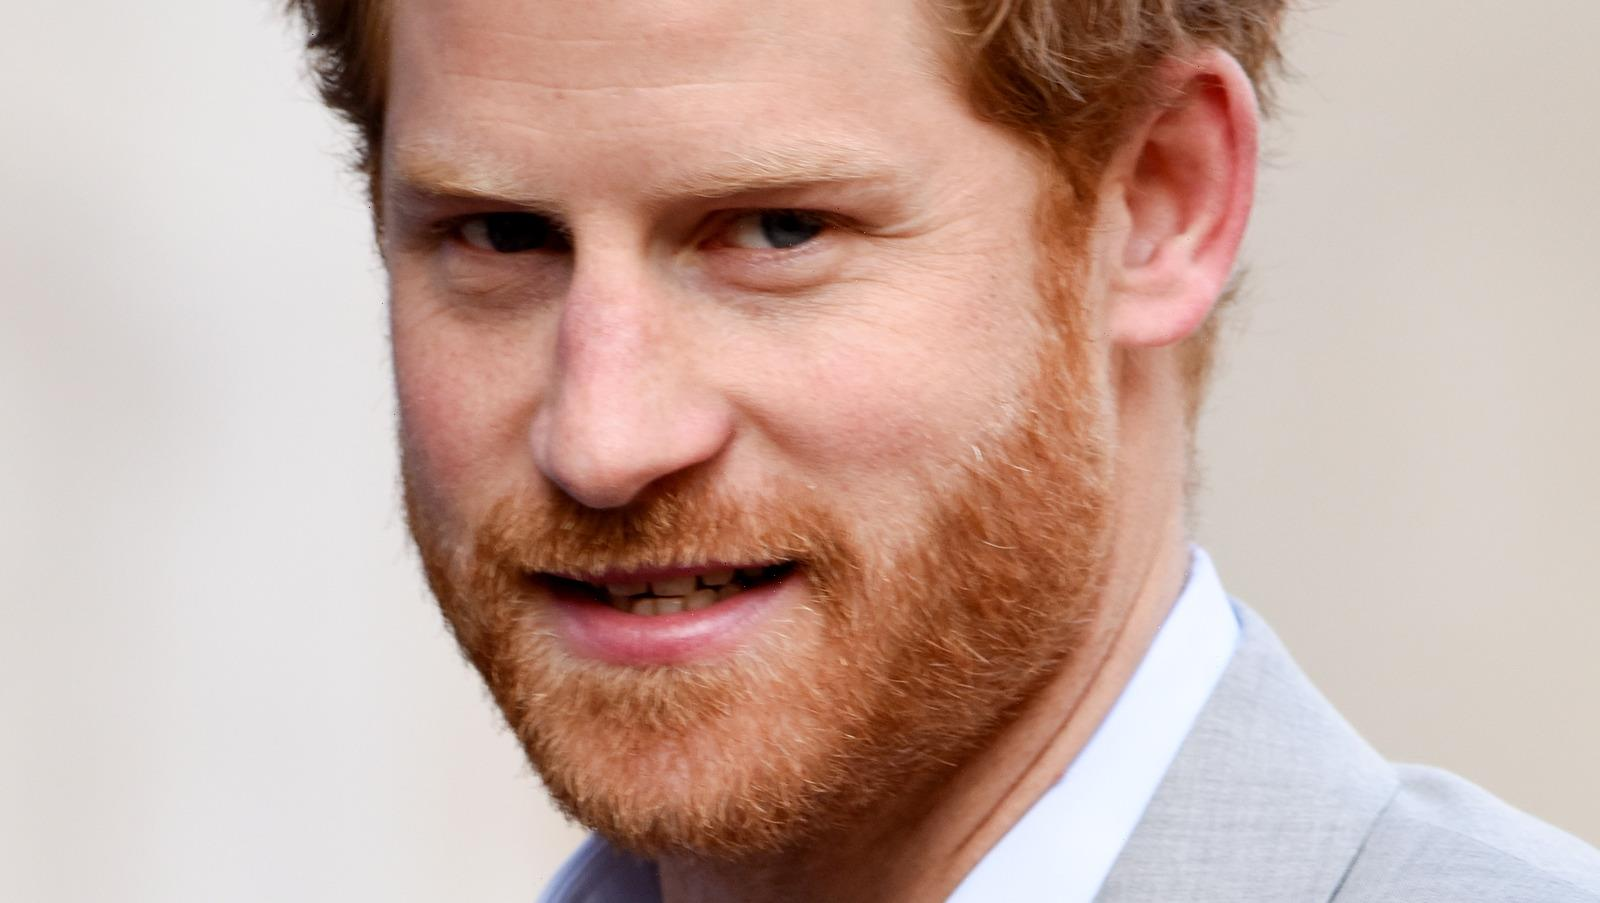 Prince Harry Is Competing With Prince William To Be The Better Royal, According To Expert